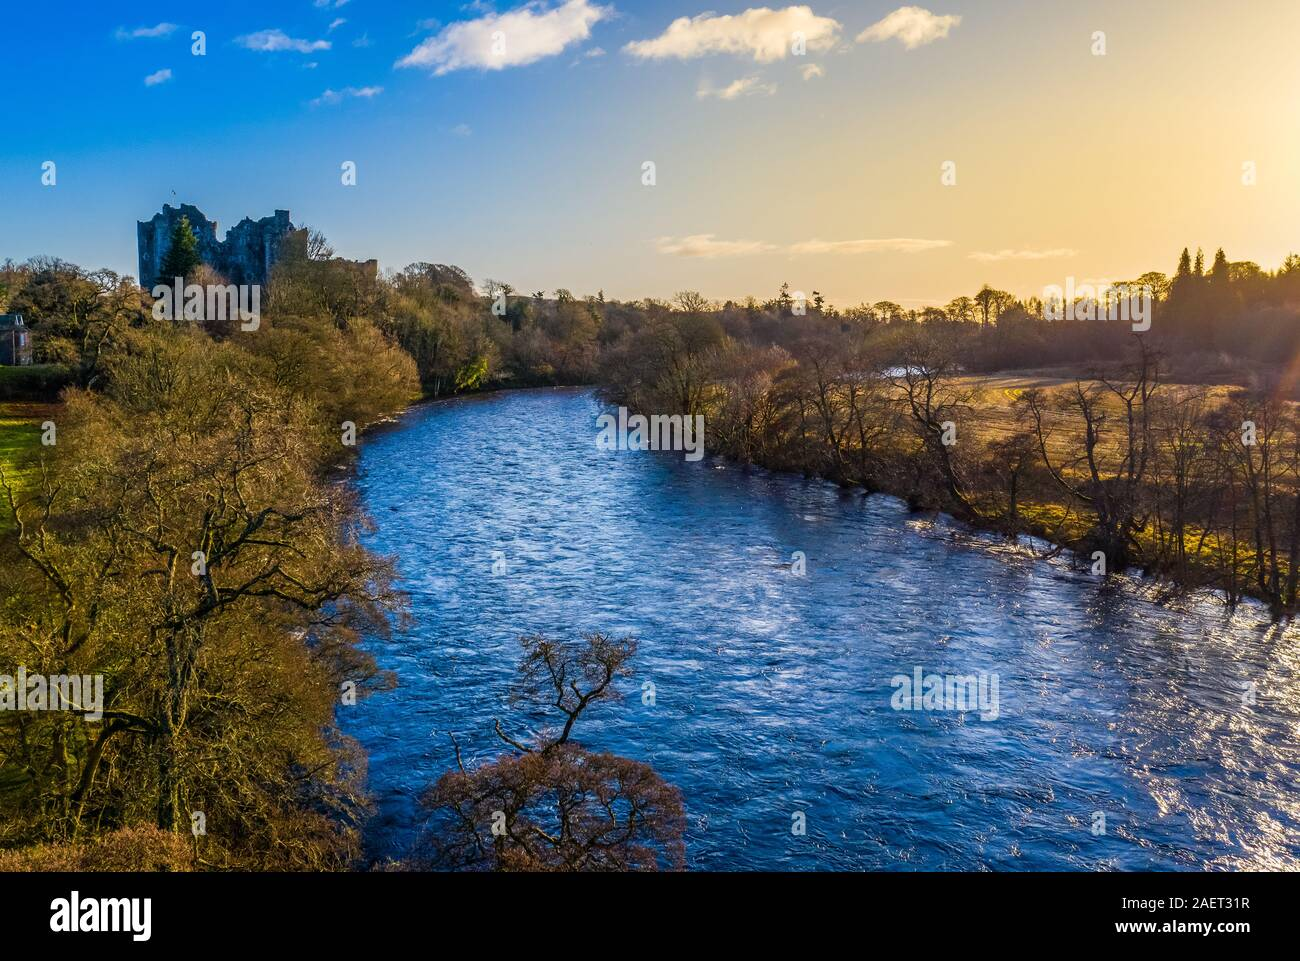 A River And Castle In Scotland In The Beautiful Morning Light Stock Photo